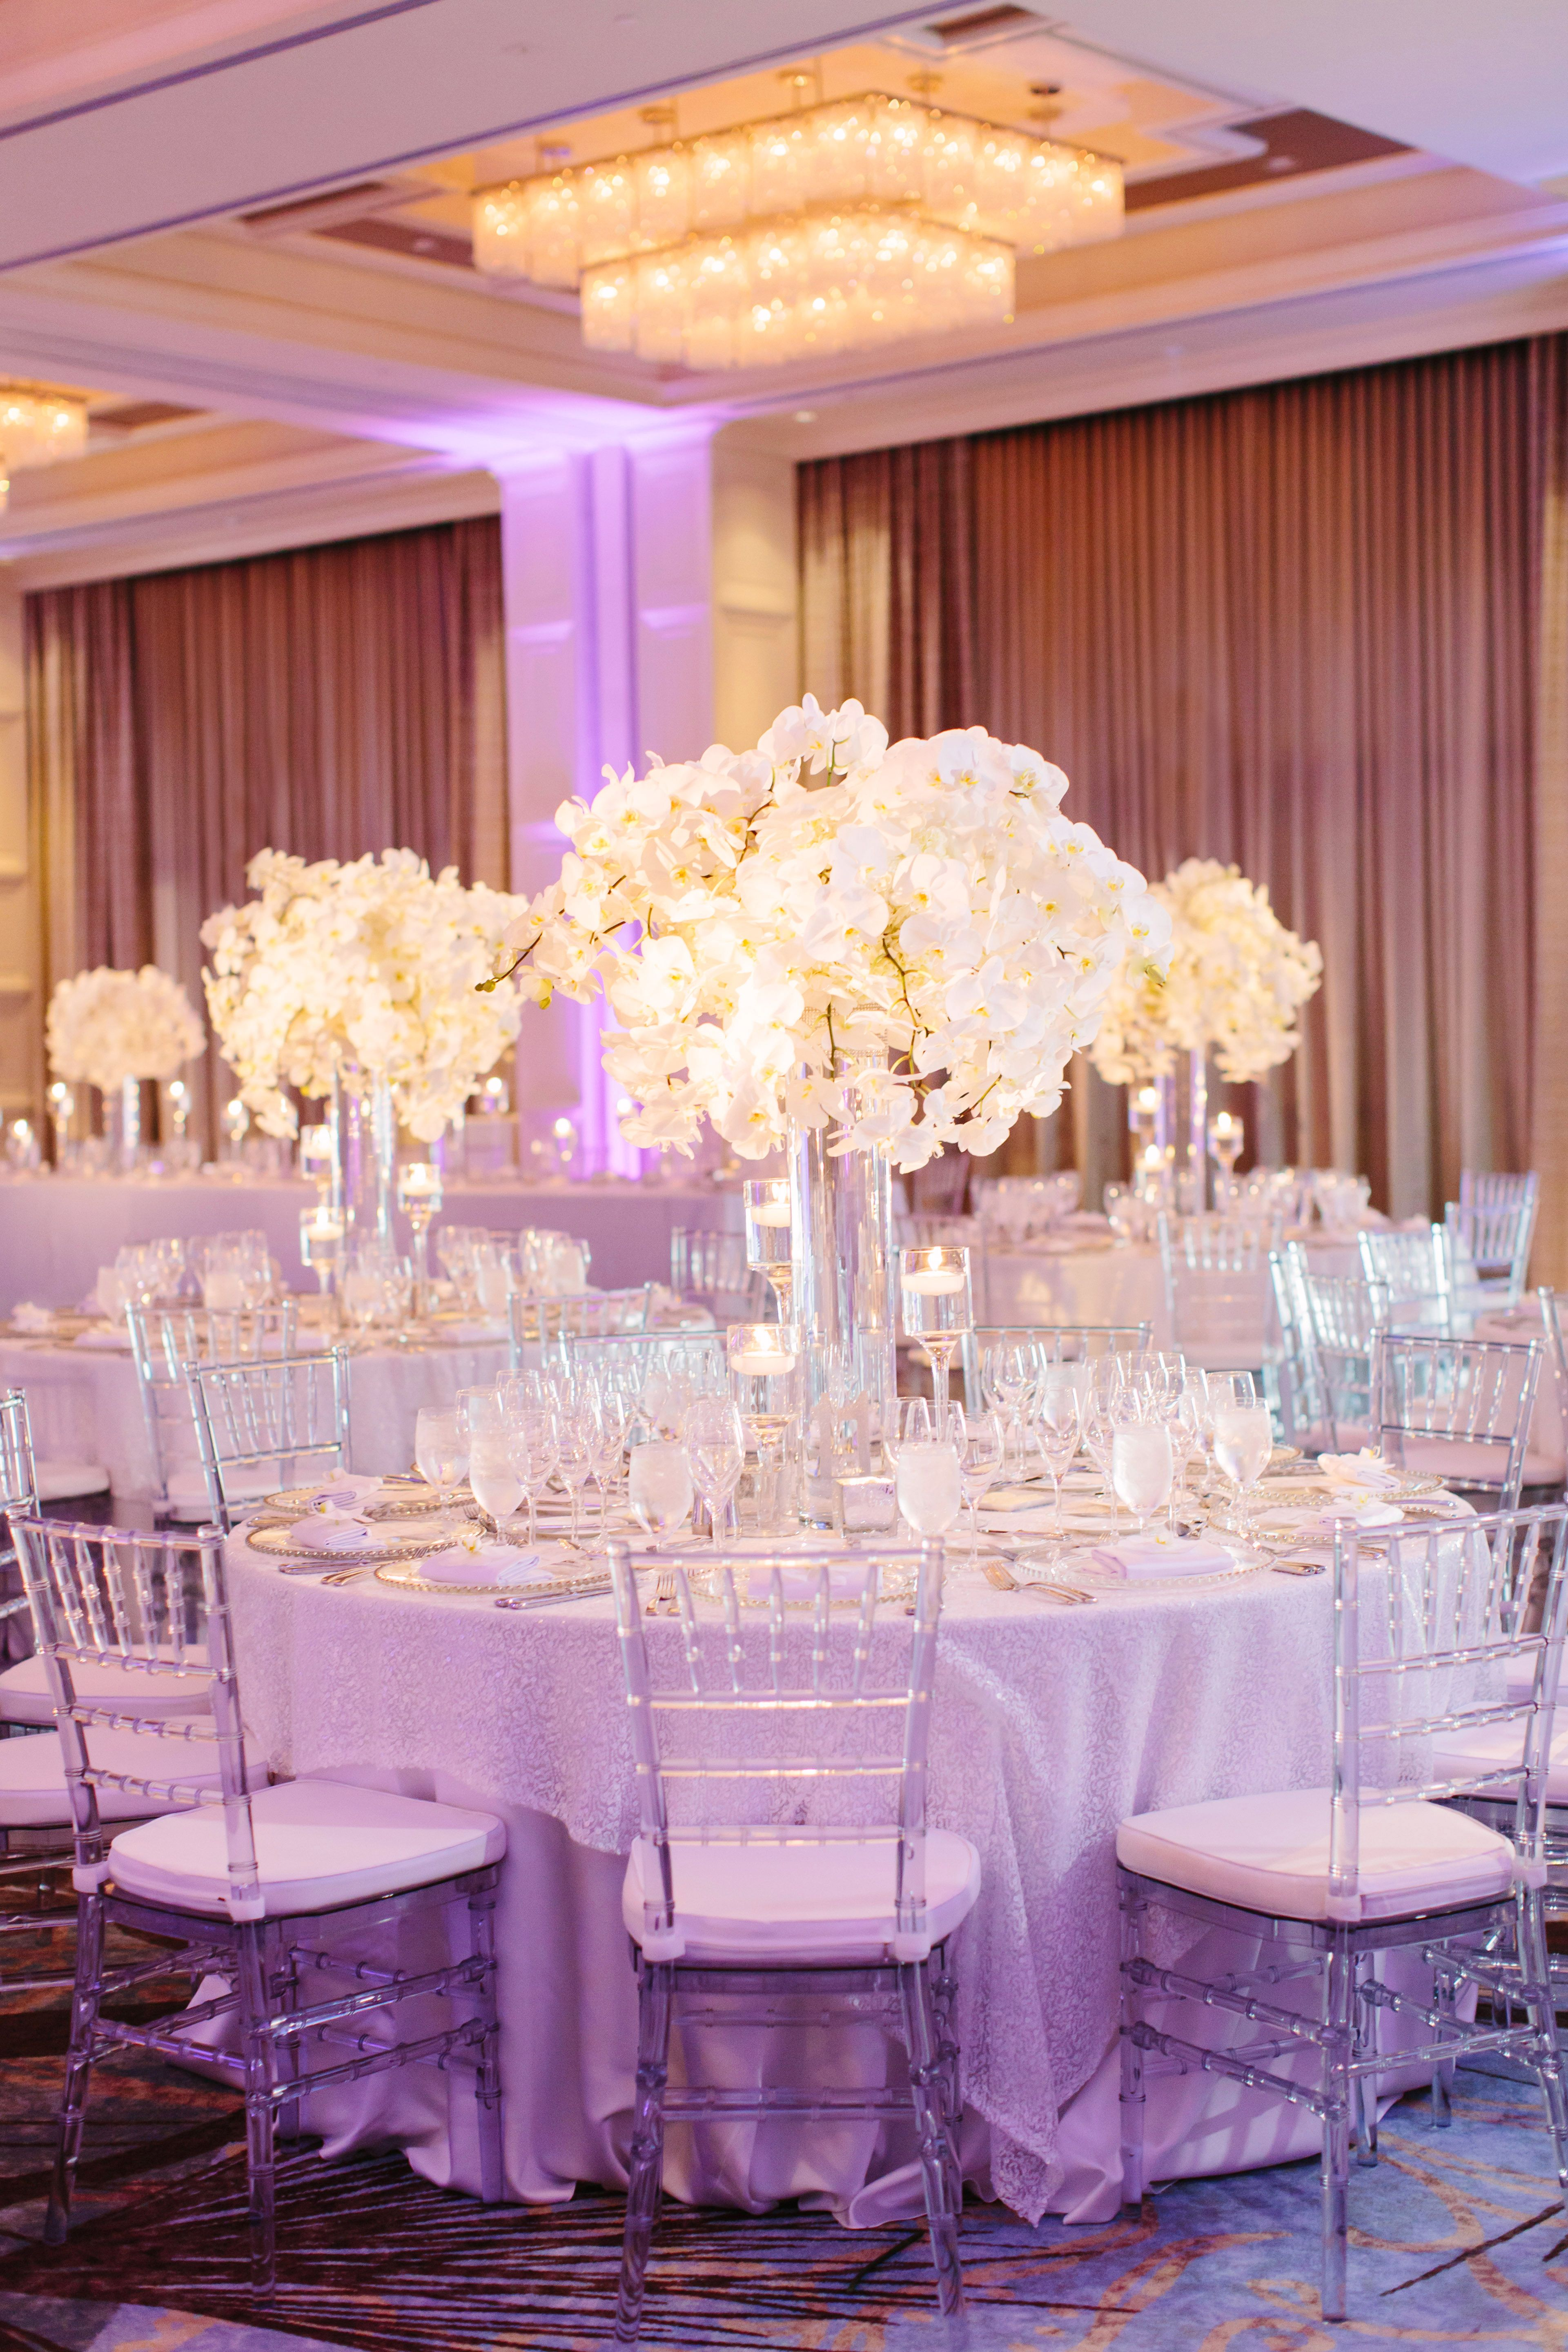 The Couple Decorated Their Reception With Frosted And Clear Glass